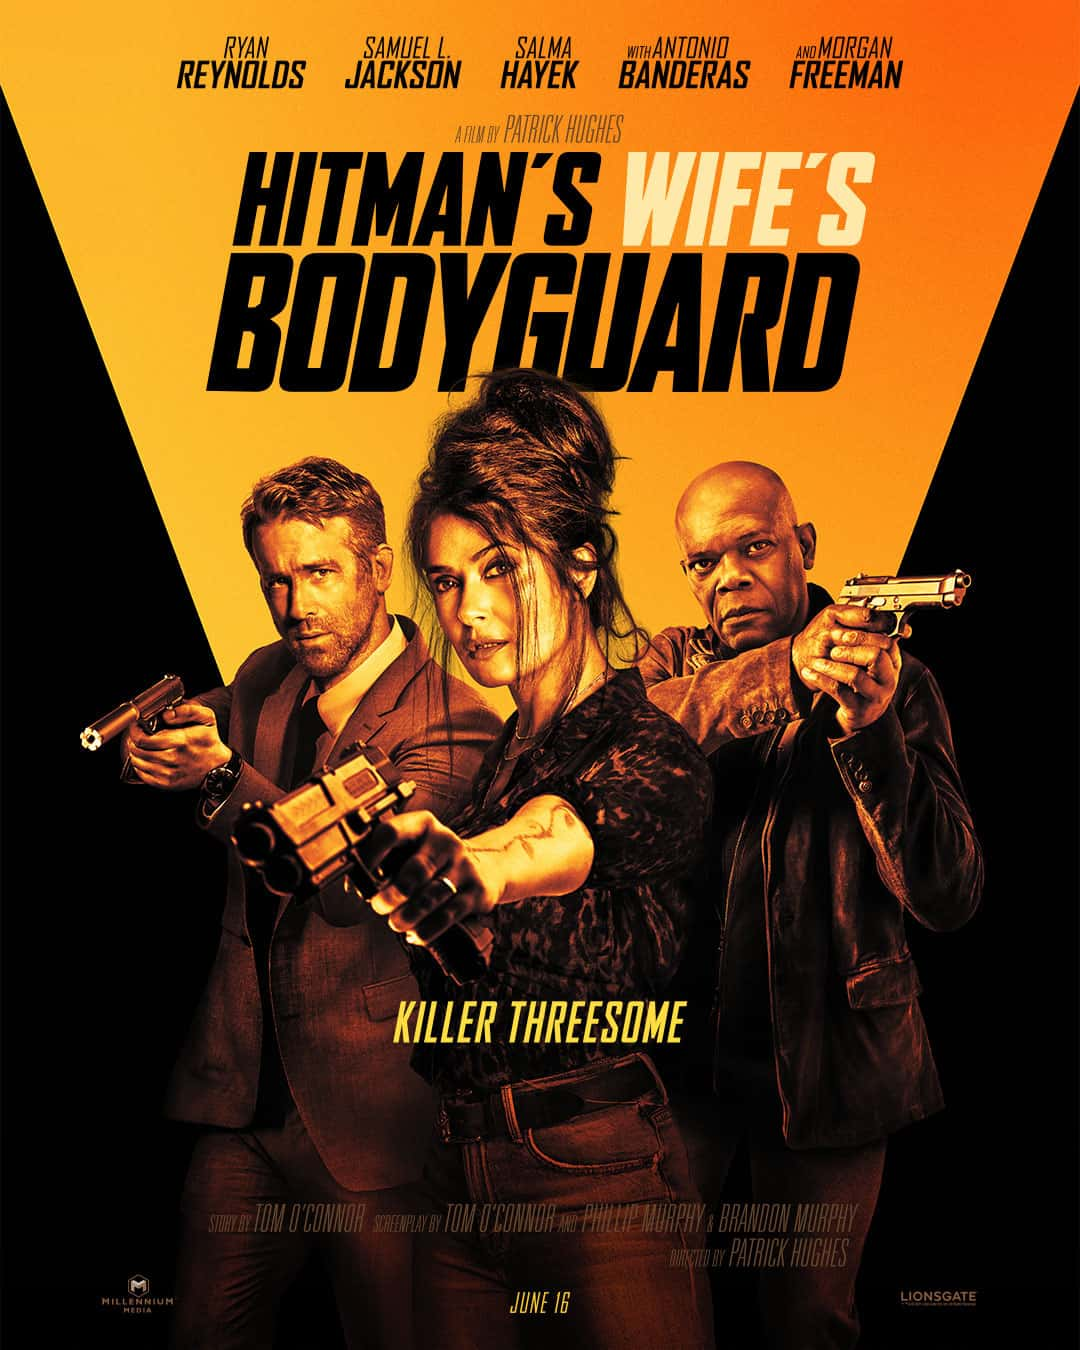 HITMAN'S WIFES BODYGUARD Poster